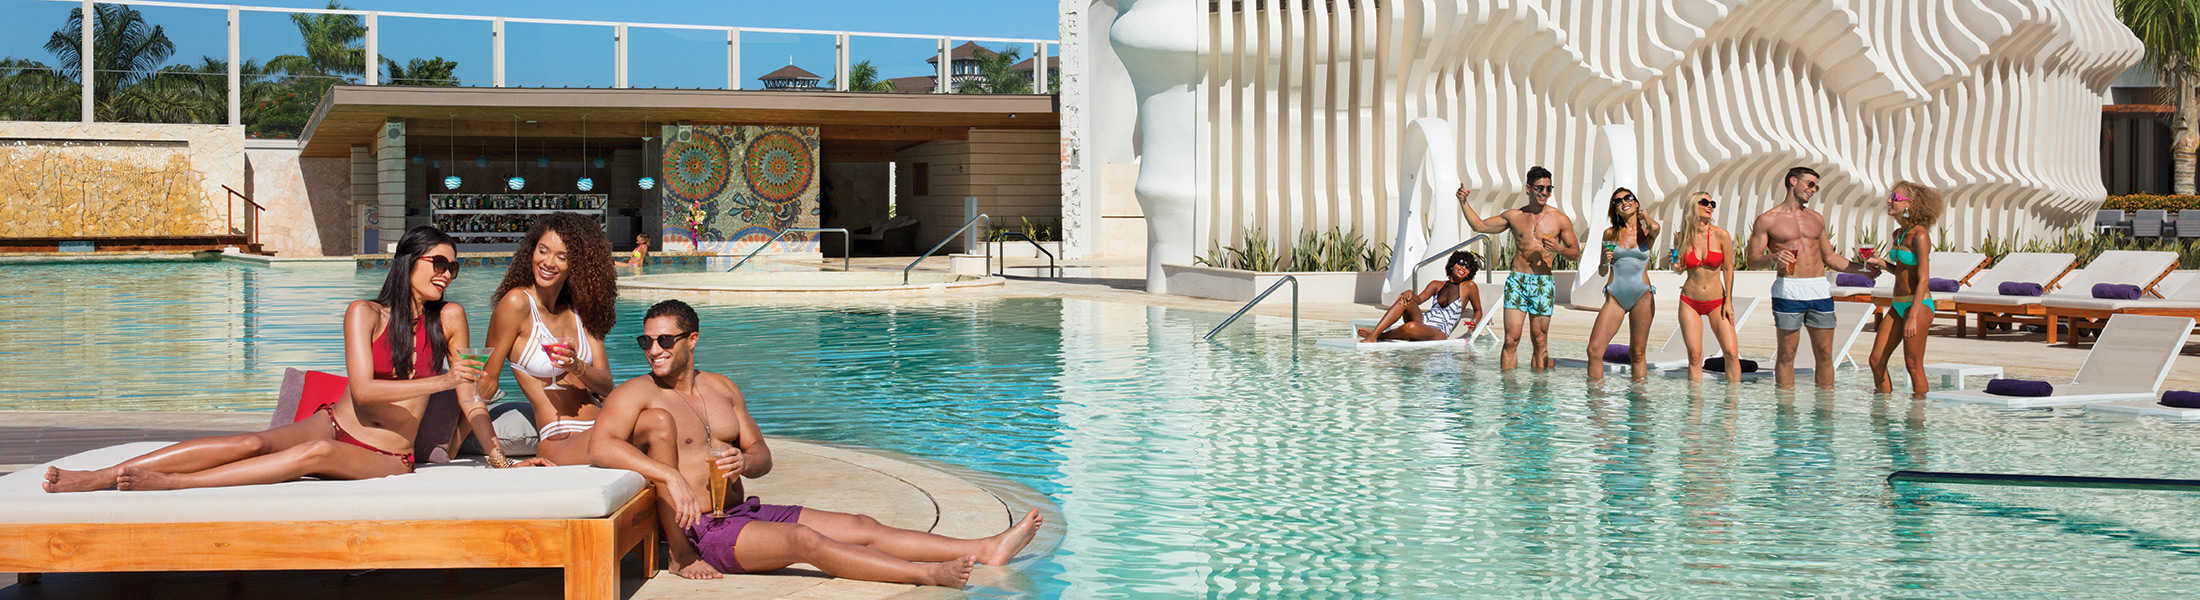 Couples and friends relaxing in the main pool at Breathless Montego Bay